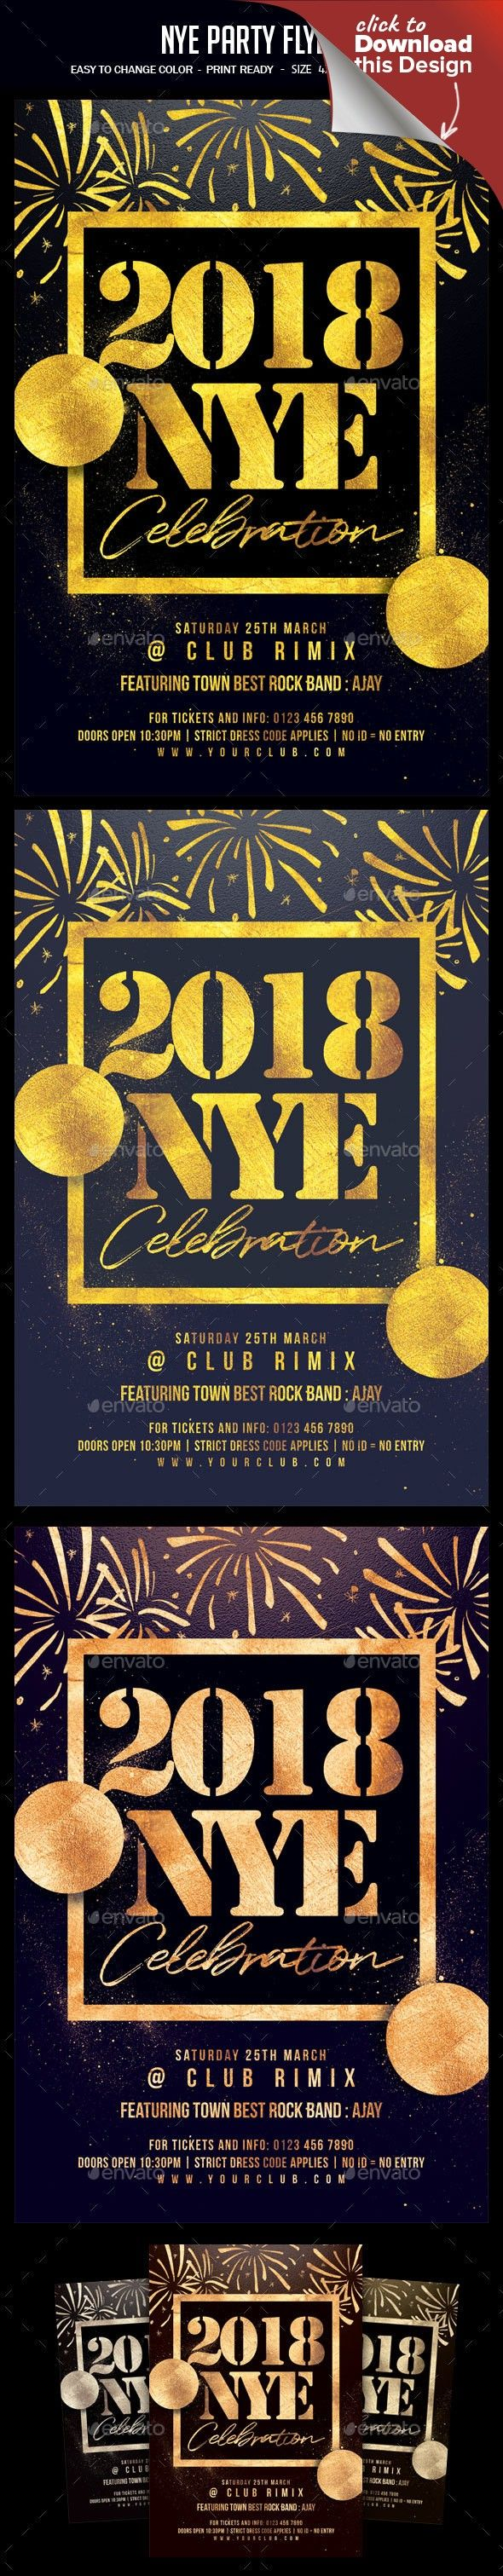 Wedding decorations beach december 2018 NYE Party Flyer  Pinterest  Nye party and Party flyer